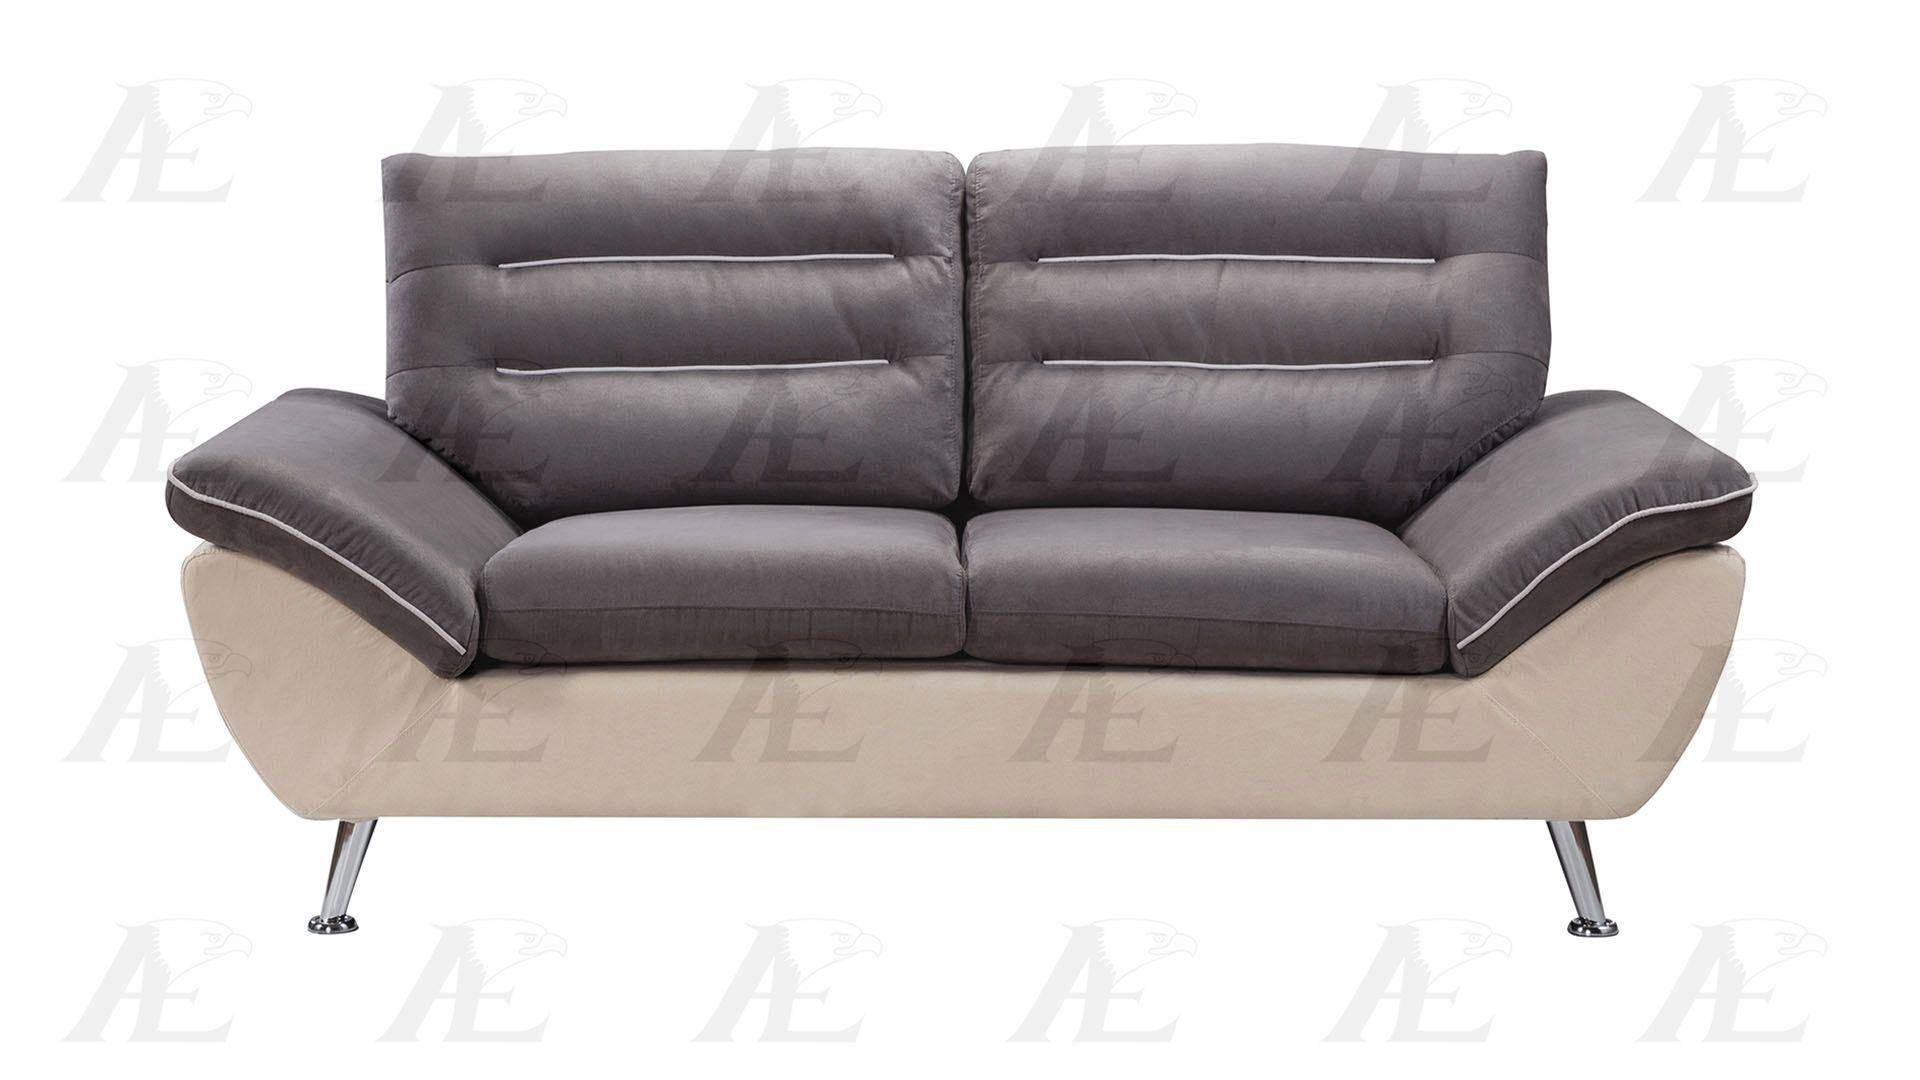 Groovy American Eagle Ae 2365 Modern Gray And Yellow Sofa Set 3Pcs Pdpeps Interior Chair Design Pdpepsorg